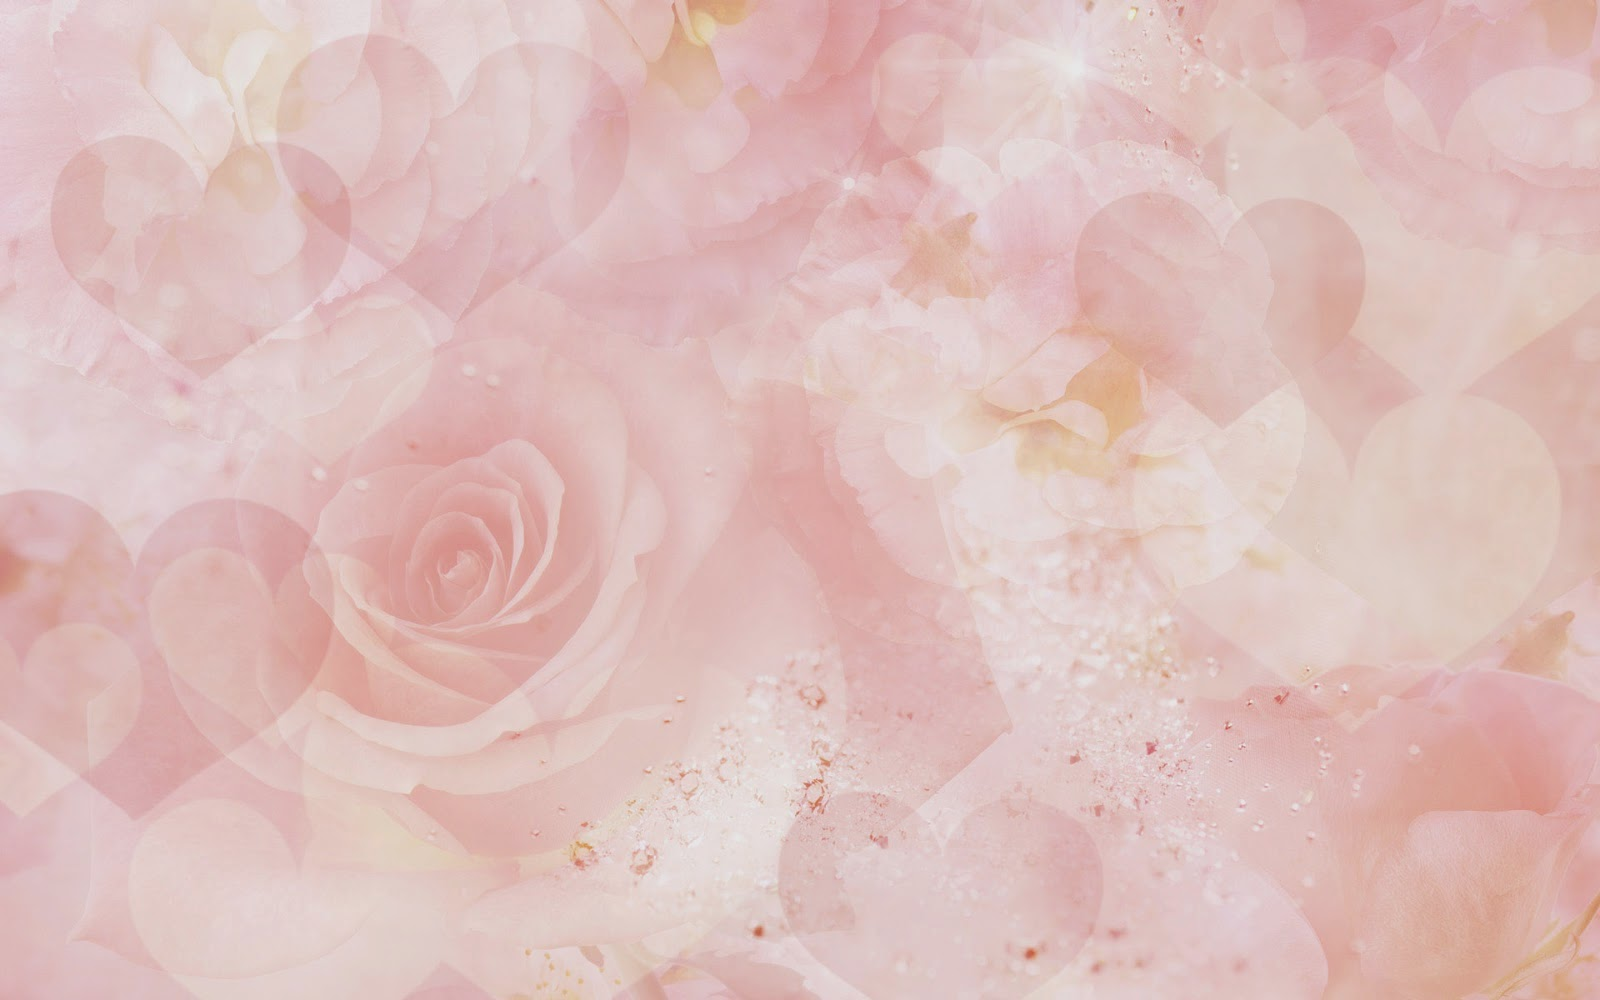 ��� � ������ ���� ����� ����� , ���� ��� ������������ 2016 hd , Pictures of flowers 2015_1410136909_489.